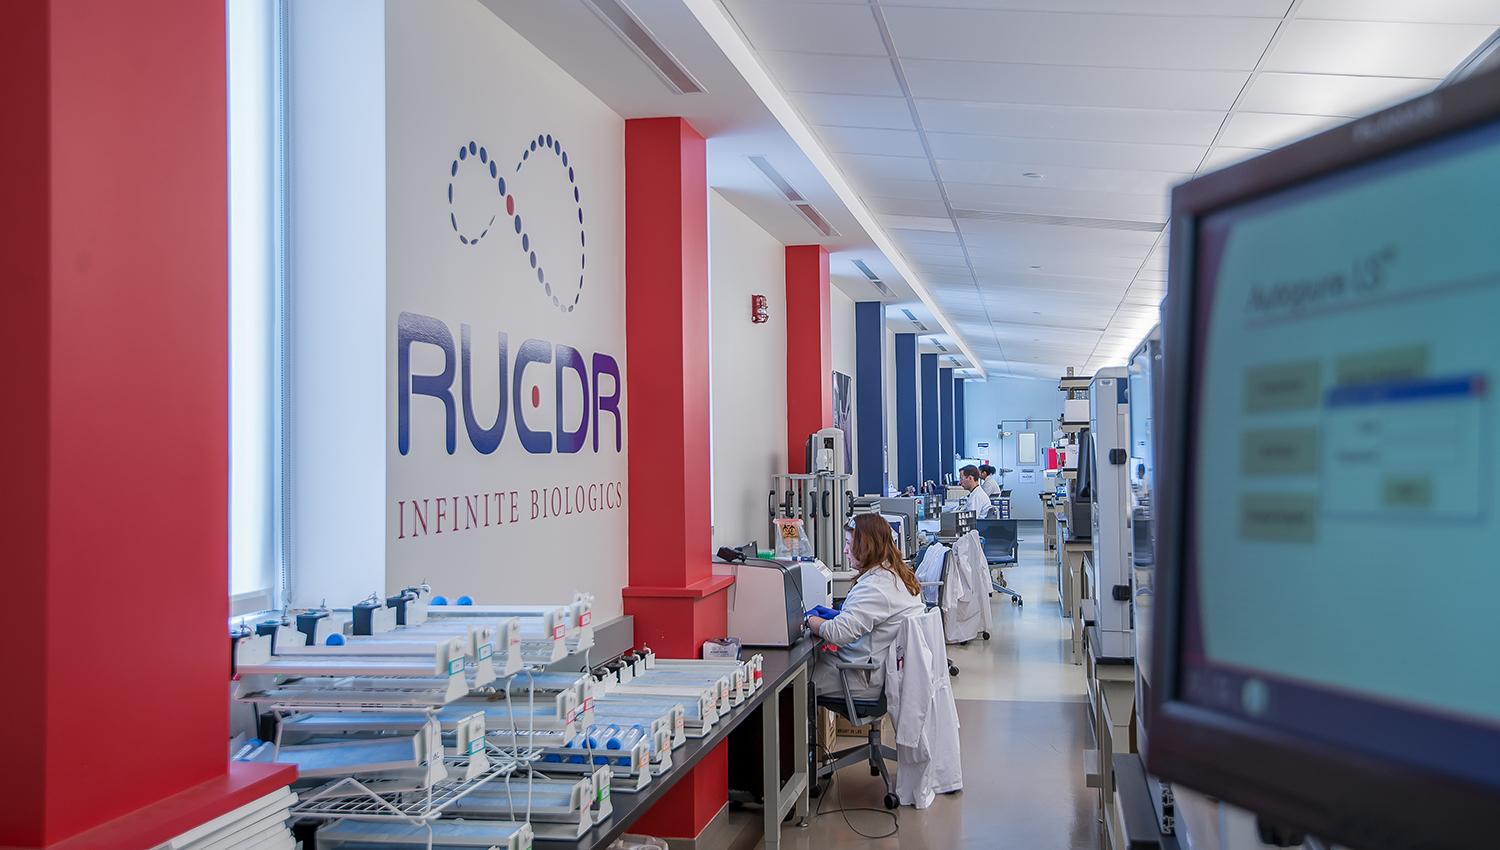 Rutgers University Cell & DNA Repository